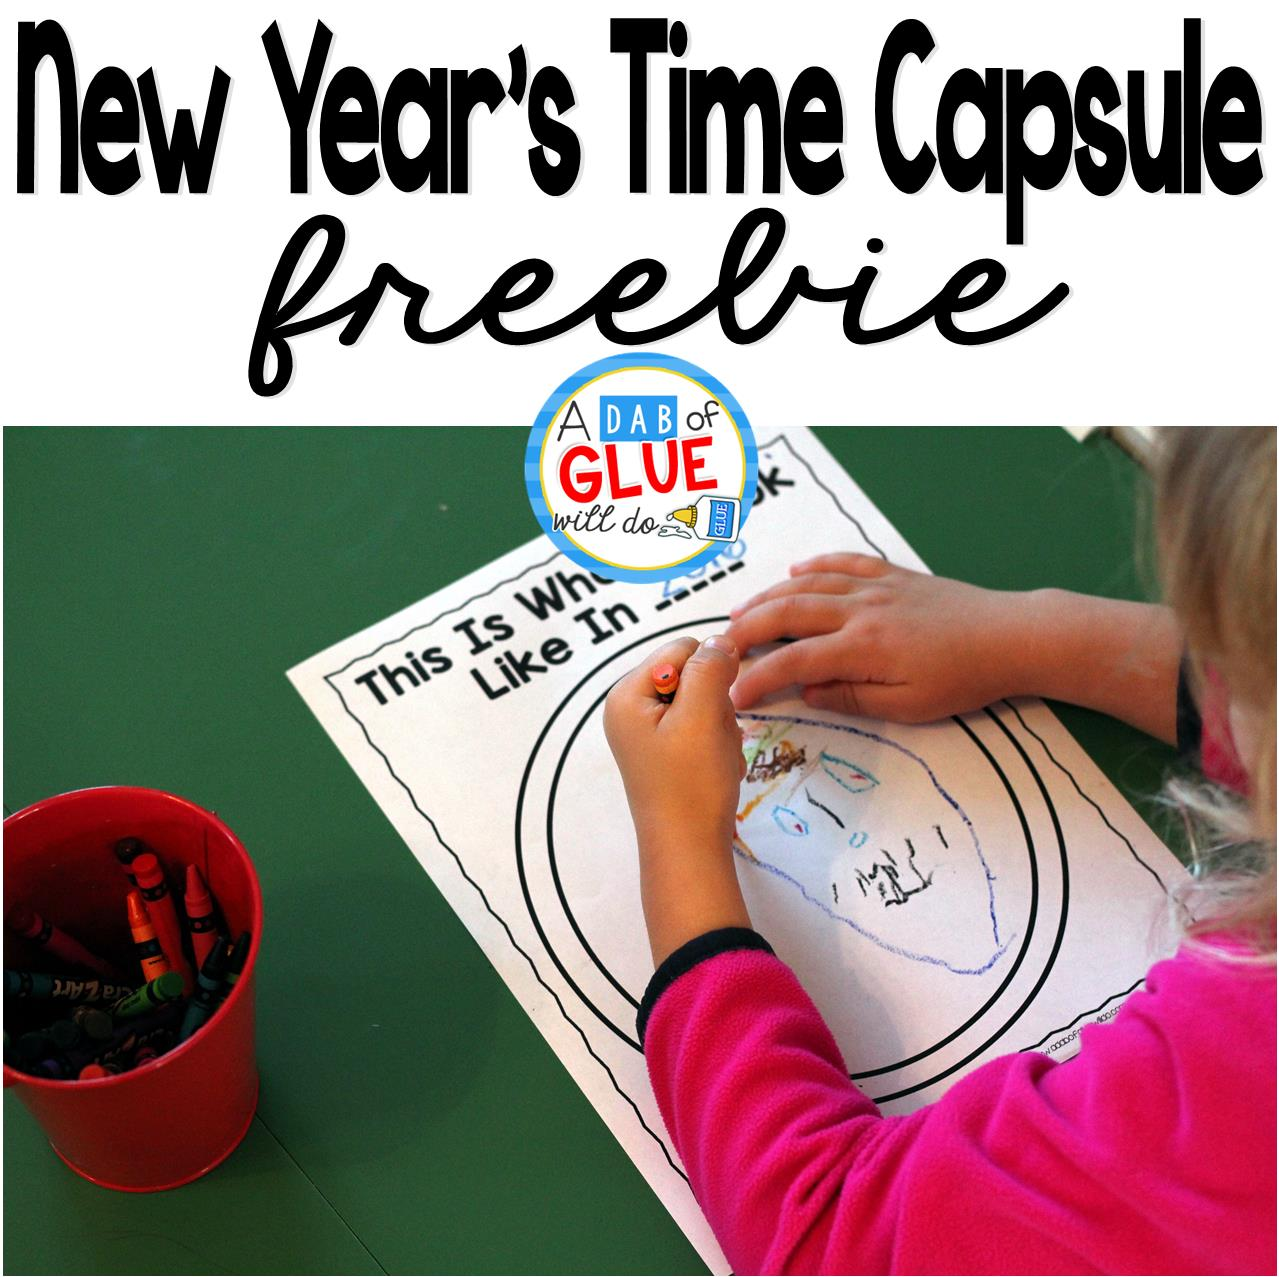 New Year's Time Capsule is a great way for students to reflect and remember where they are at academically and personally.  It is a great keepsake to look back on year after year. This free printable is perfect for preschool, kindergarten, and first grade students.